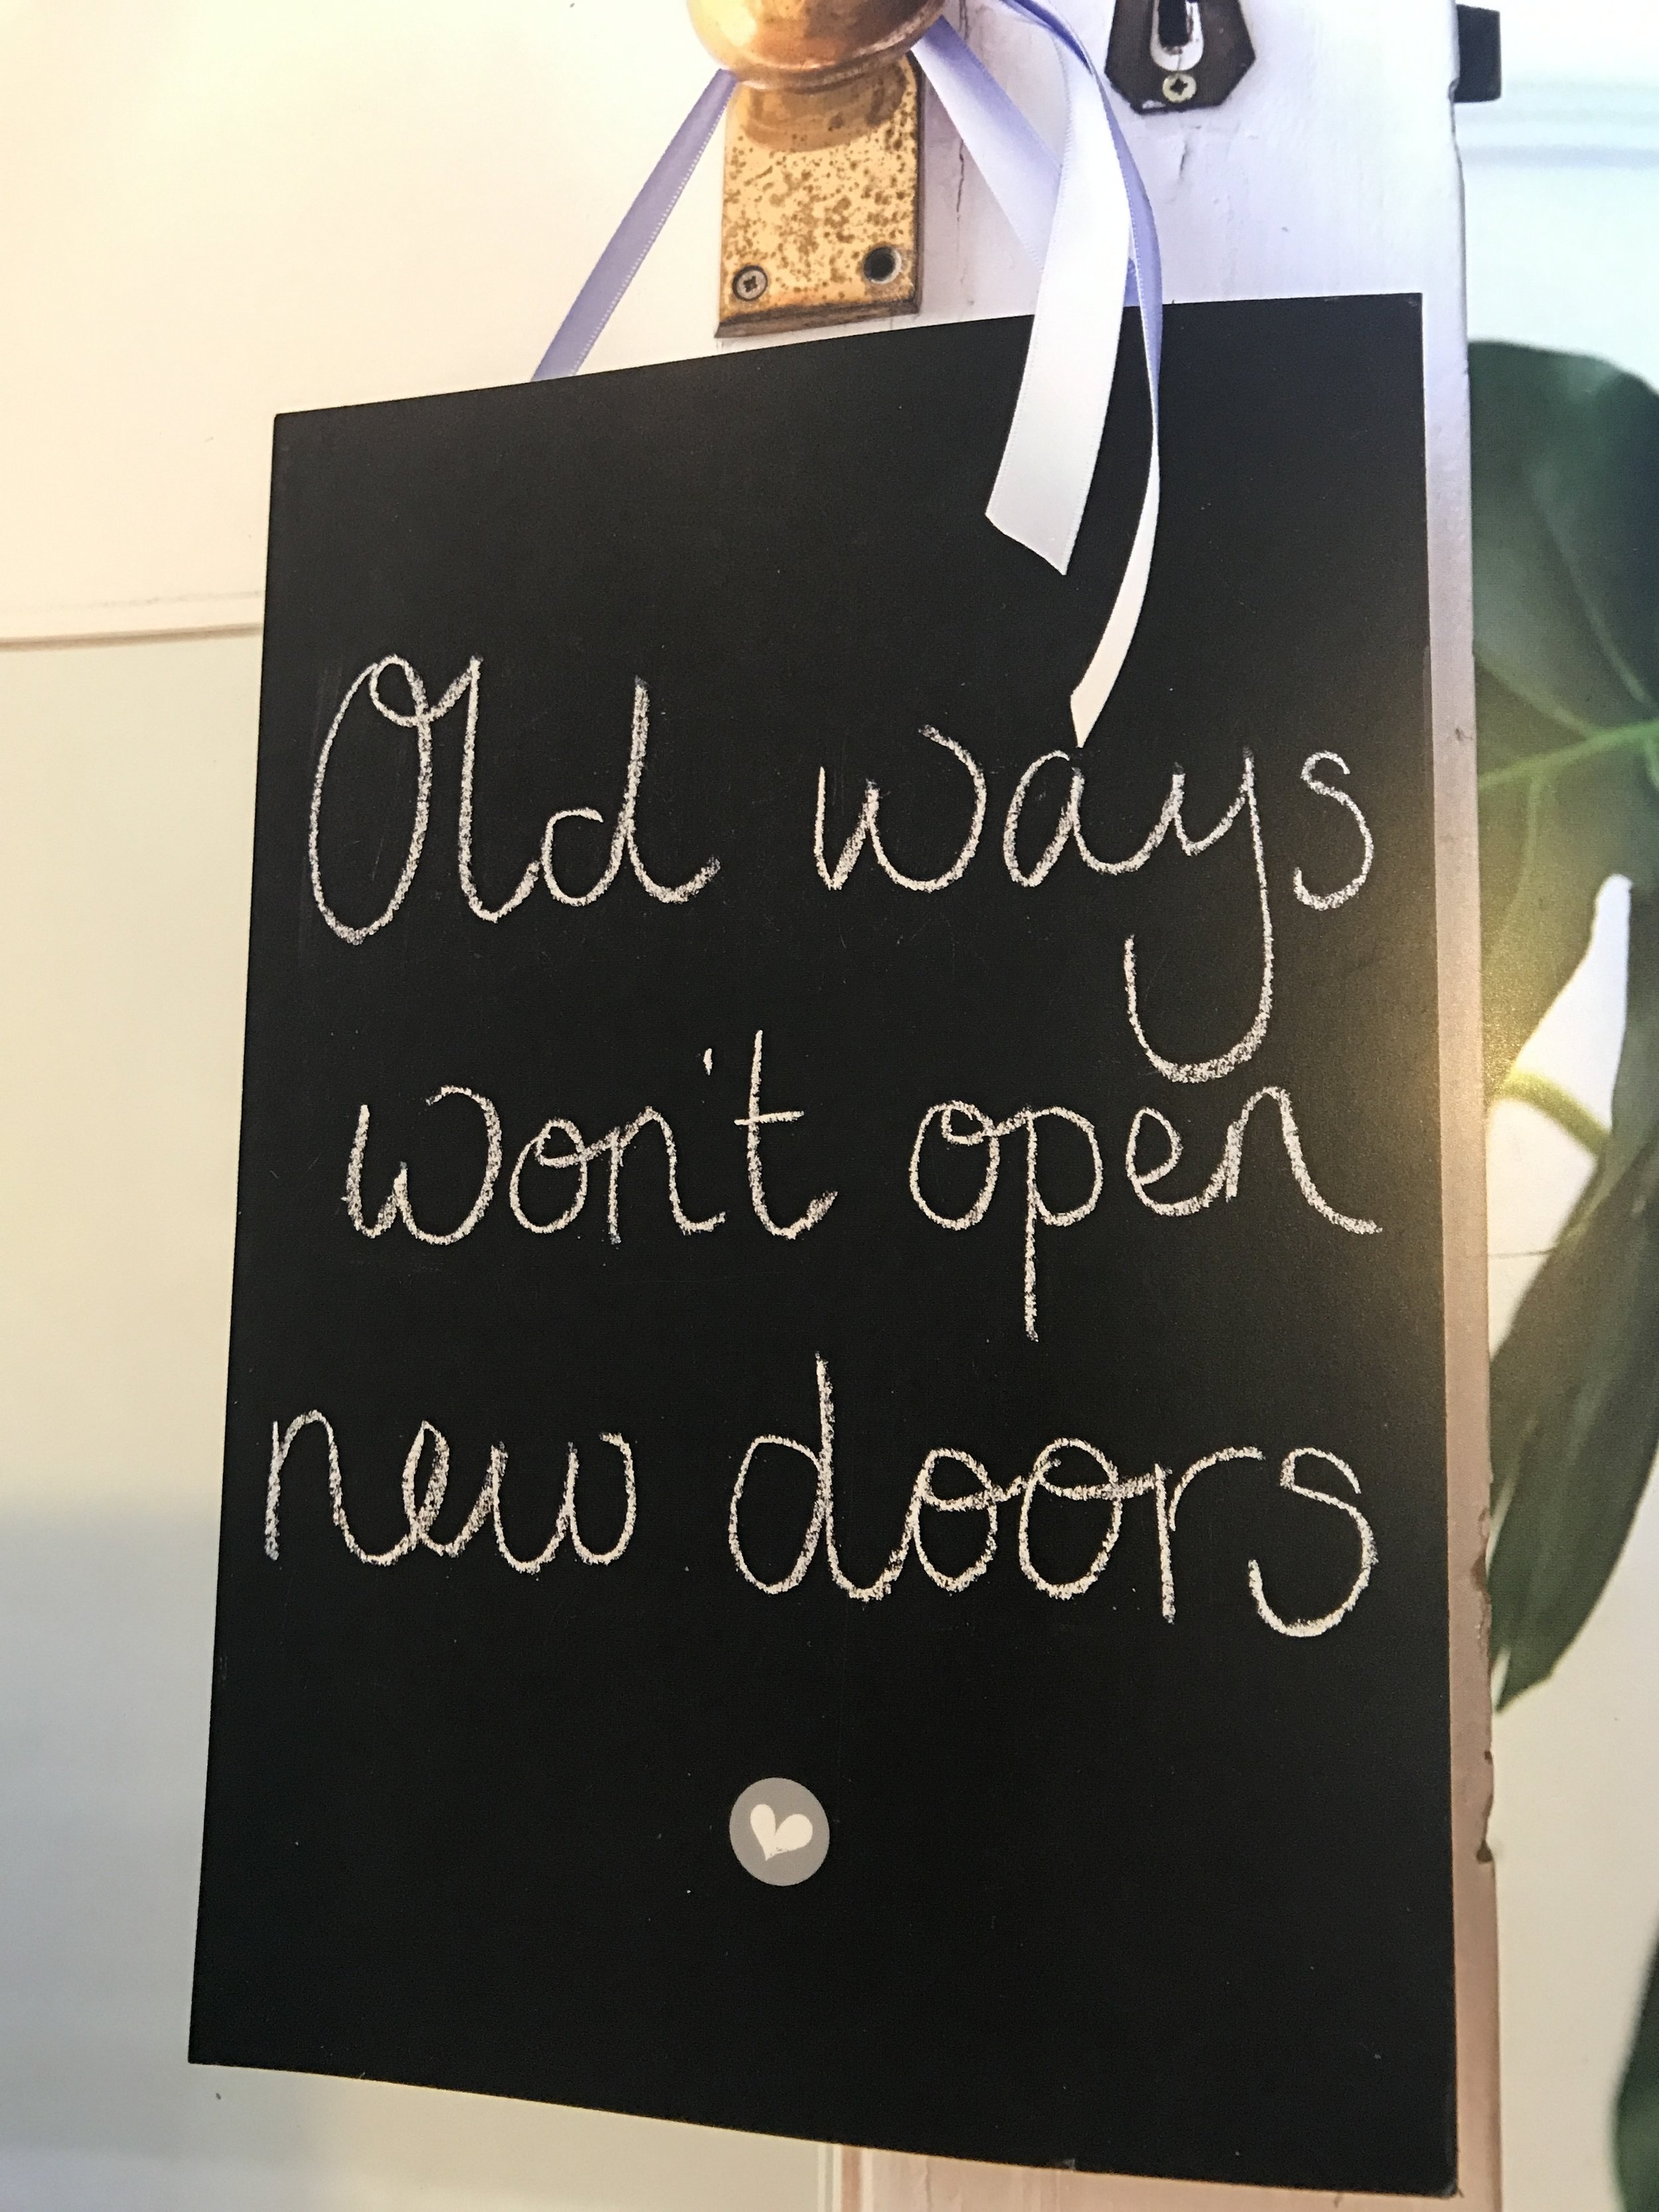 Try some 'new ways' this month!  Just see if new doors begin to open for you😊🙏🏻